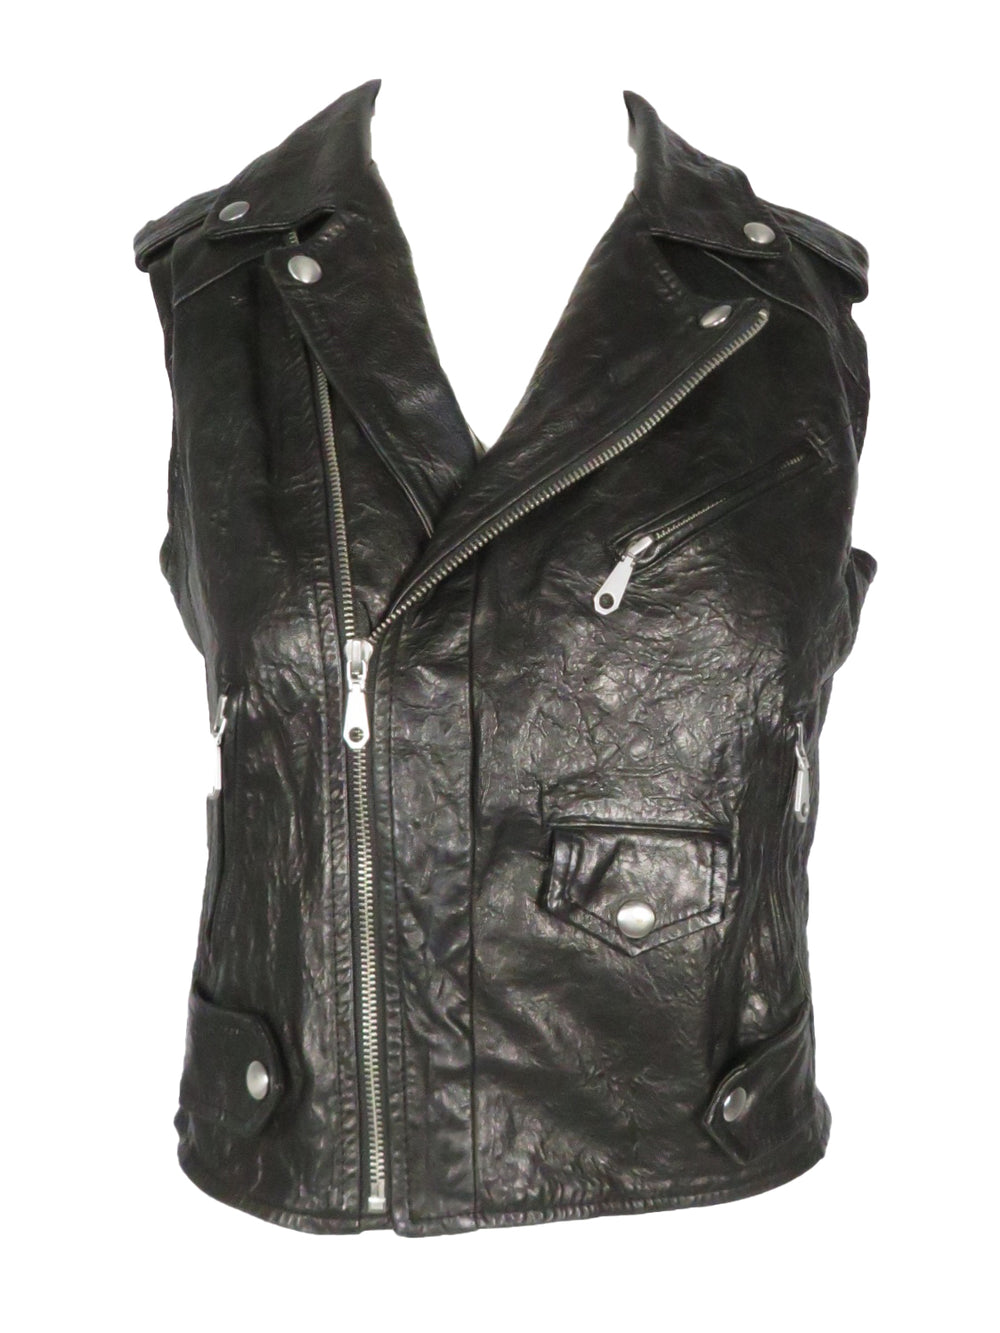 rebecca minkoff black lambskin 'leandra' textured leather vest. cropped, fitted cut featuring classic biker details and textile back panel. asymmetrical front zip closure, lined.